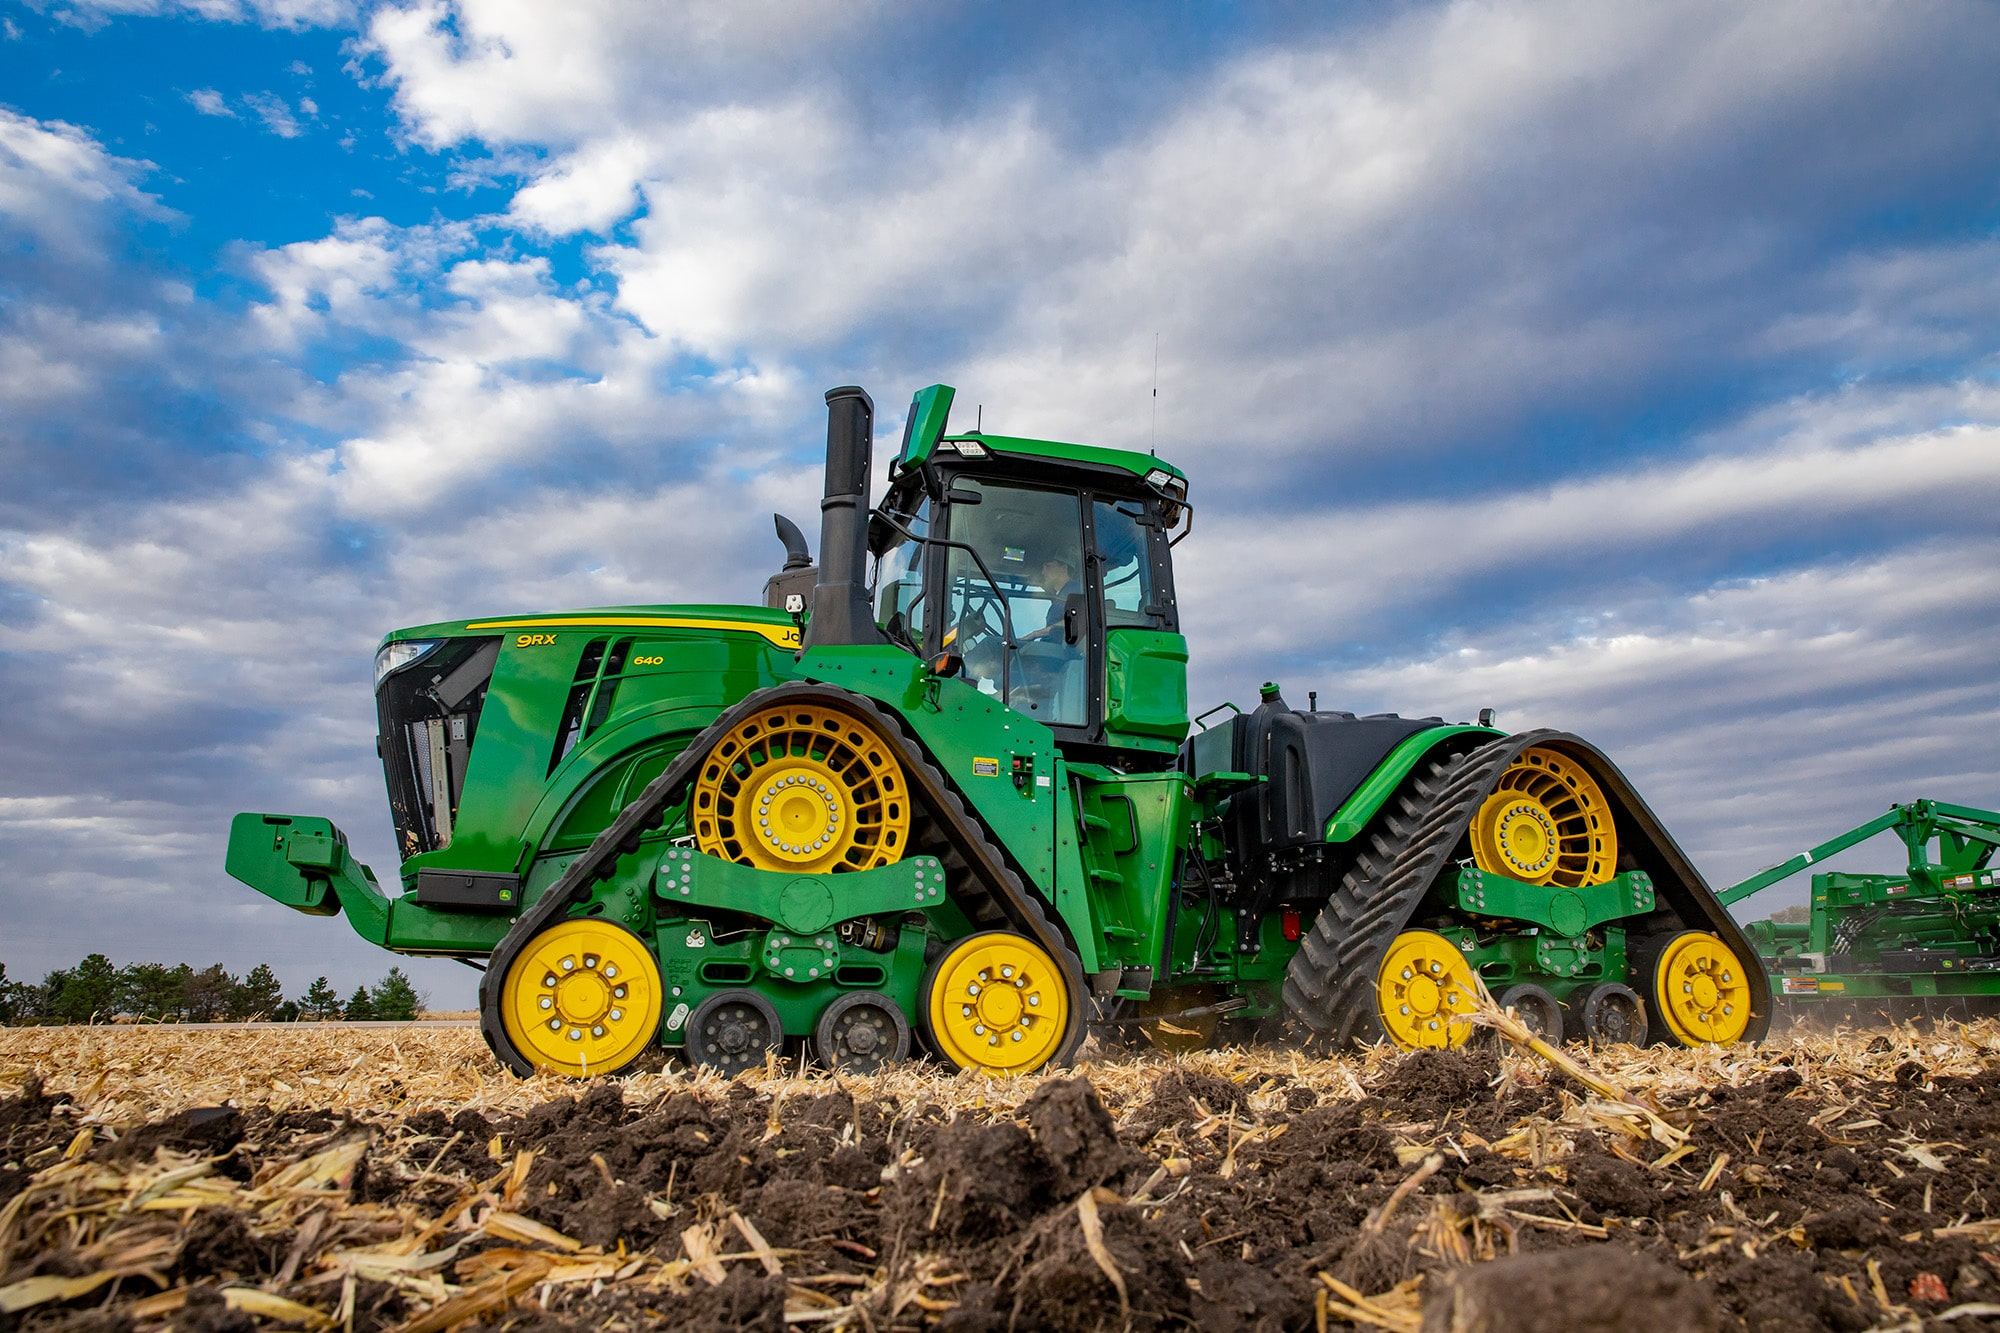 Press Release: New 9R Series tractors are stronger and smarter